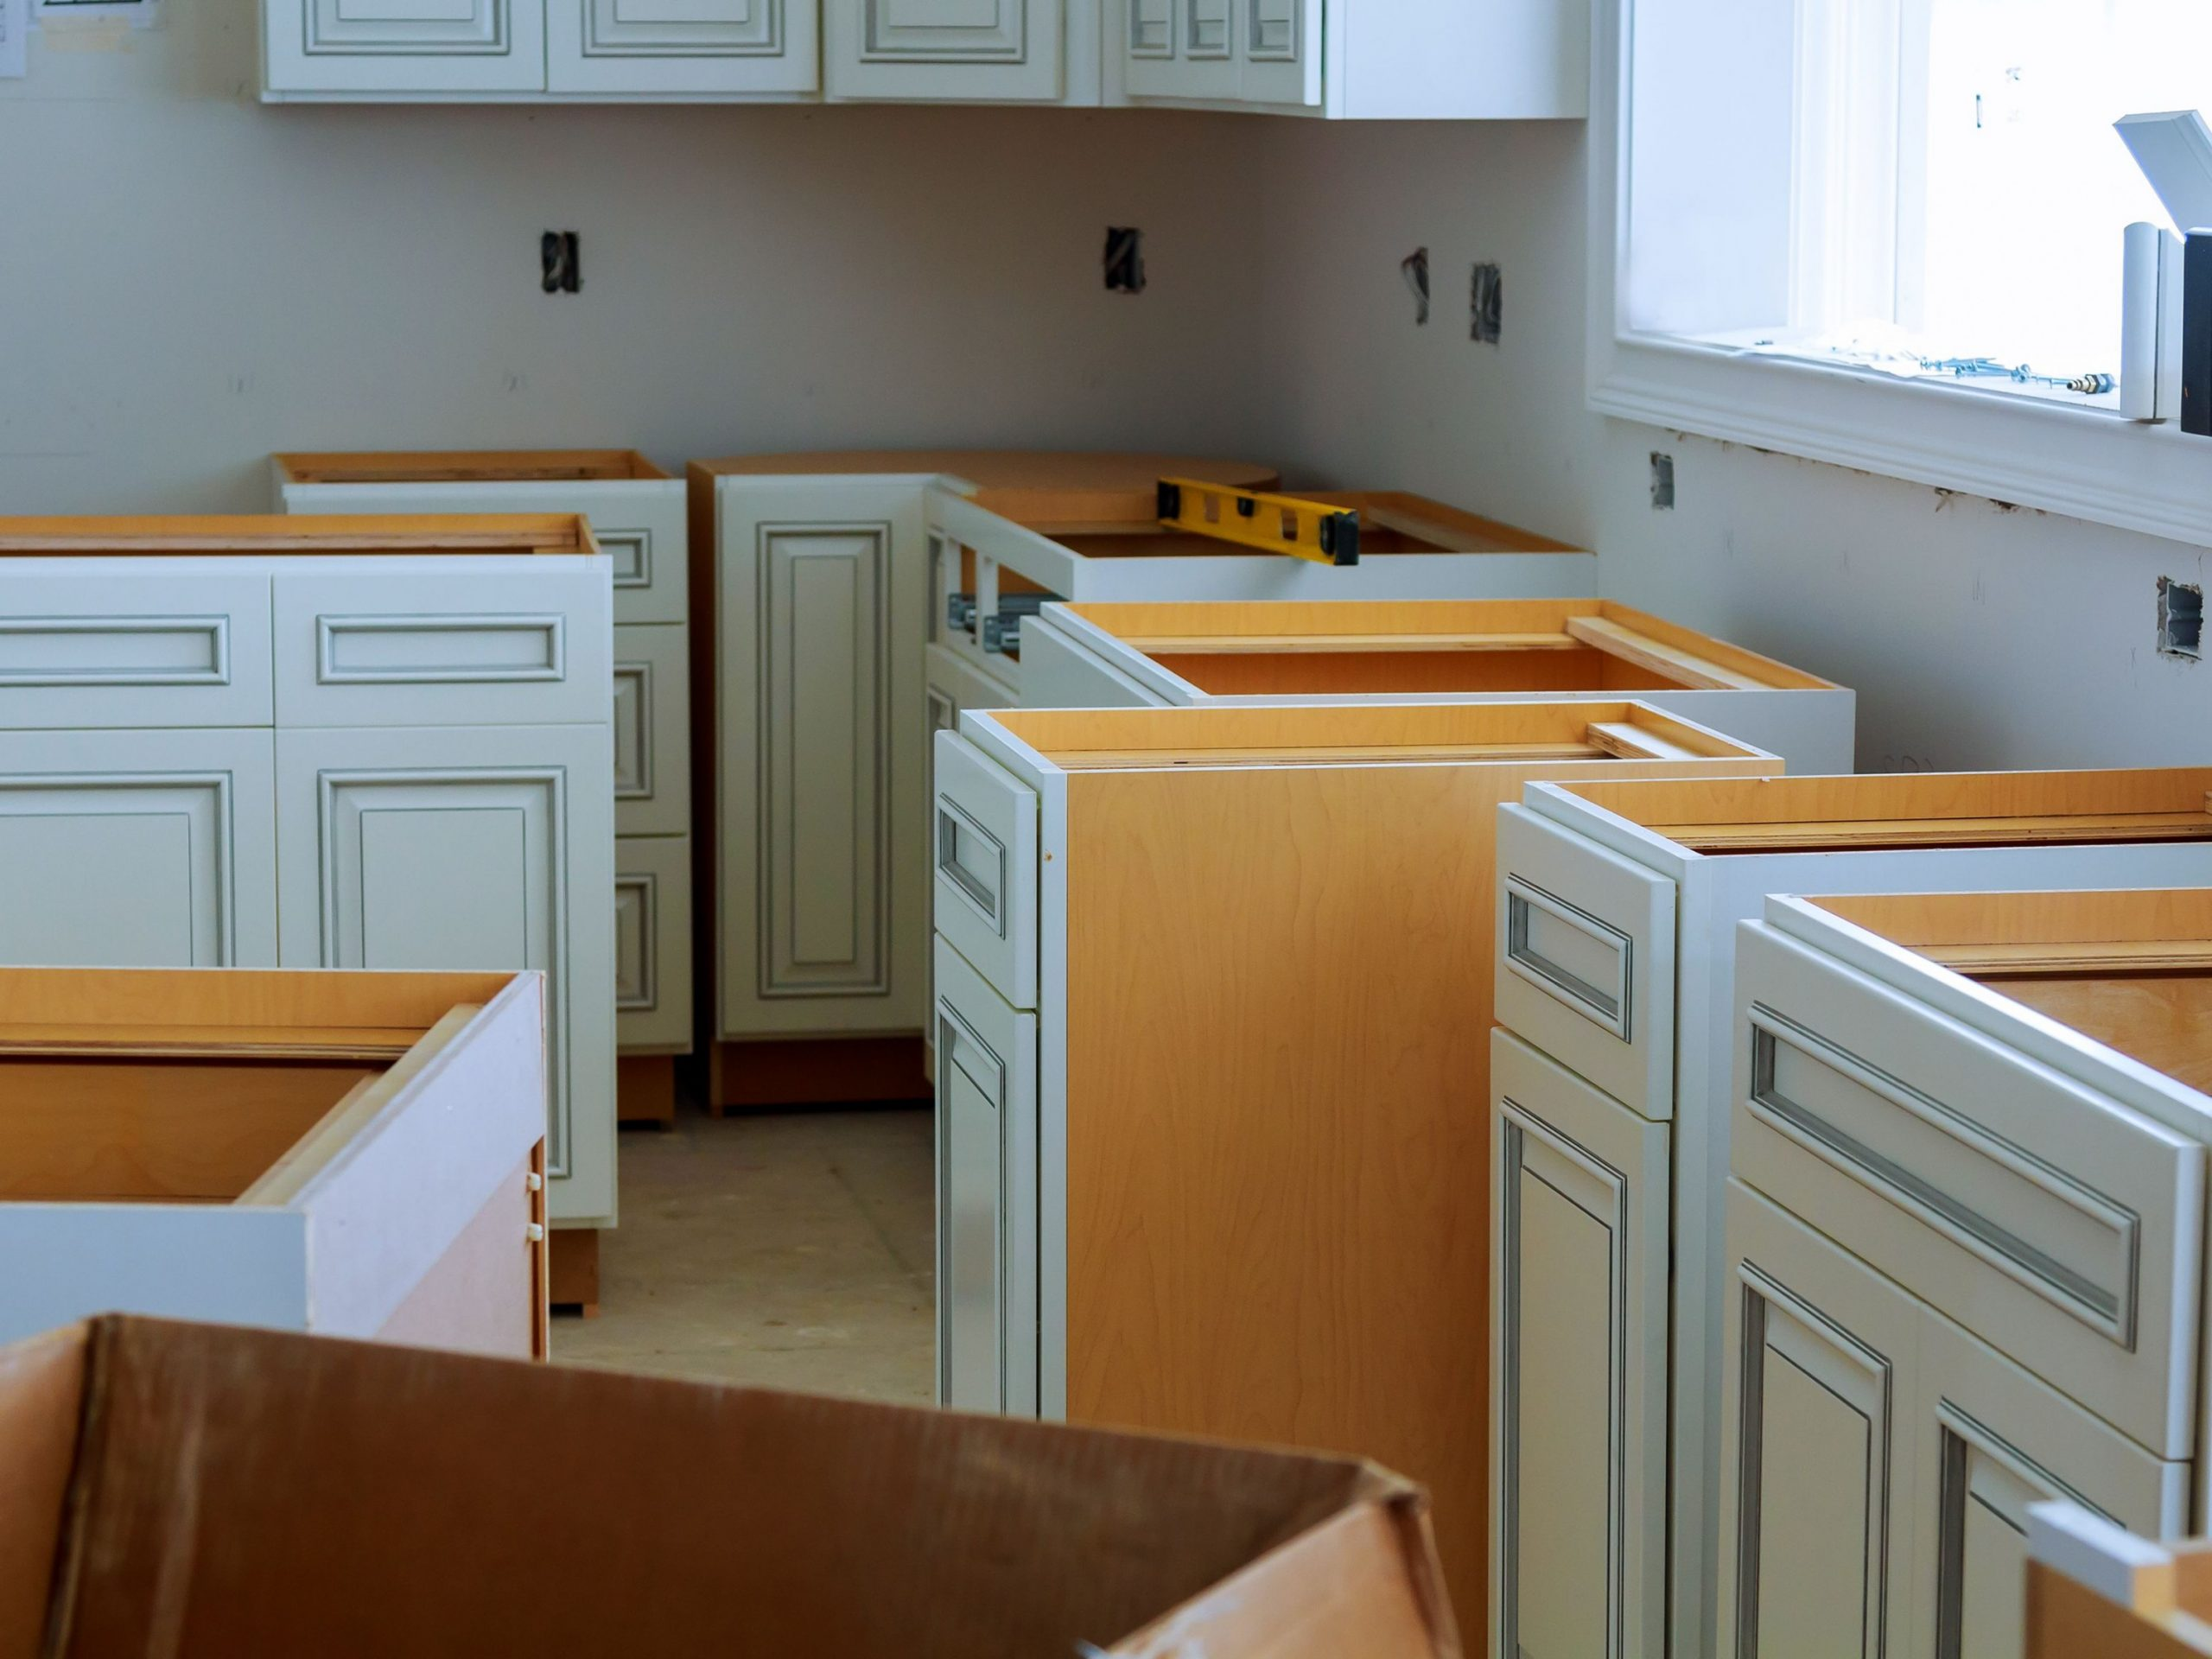 How to Beat the High Cost of Kitchen Cabinets - Cost Of Replacement Kitchen Cabinets